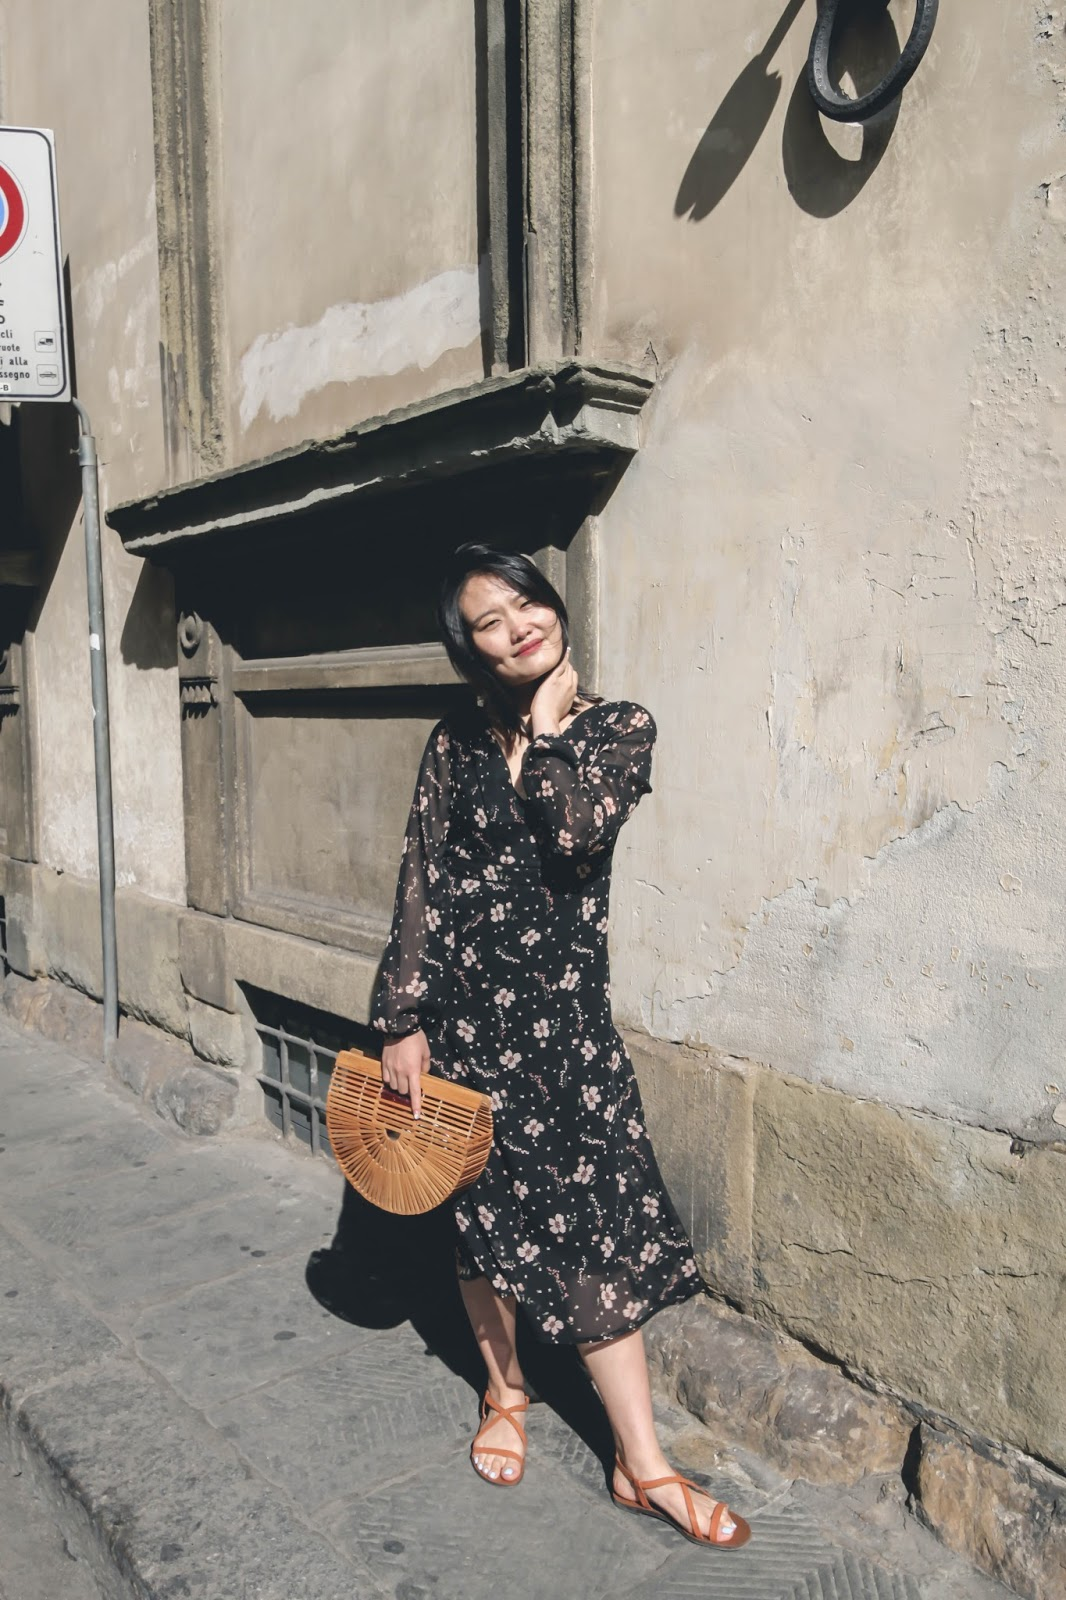 singapore blogger florence italy europe summer holiday wiwt ootd look book style street photography fashion